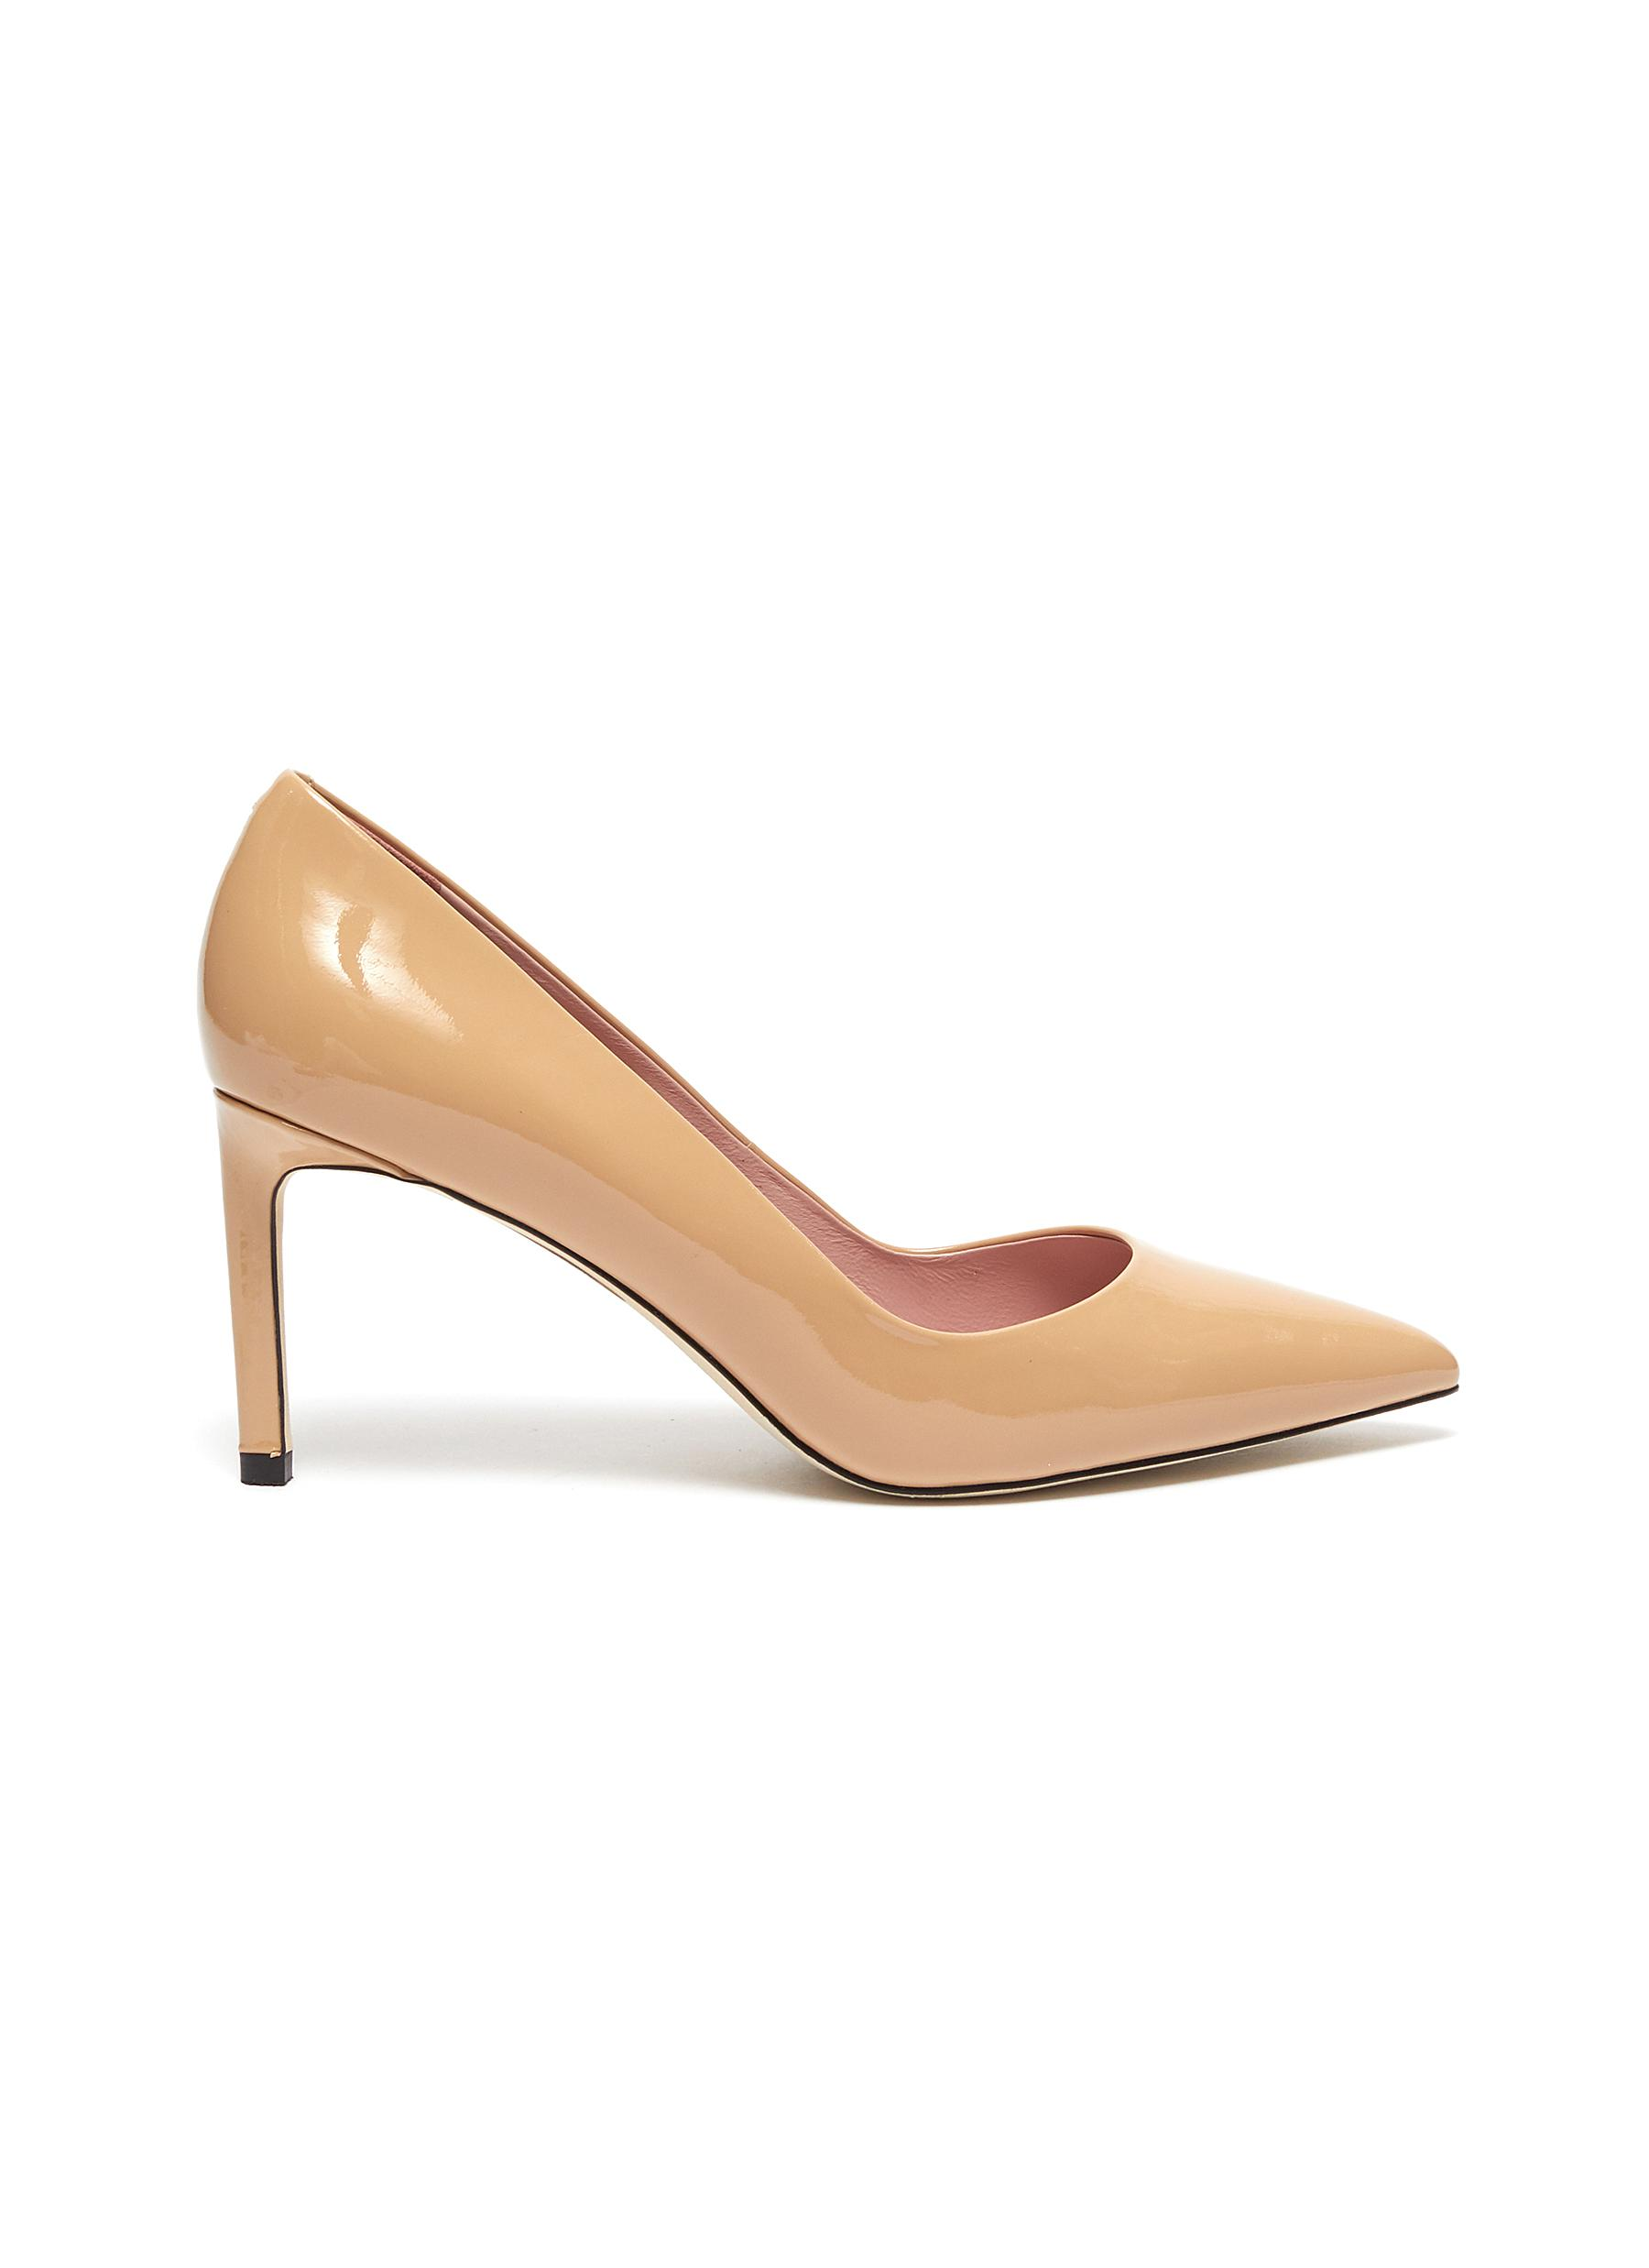 Rosie patent leather pumps by Pedder Red